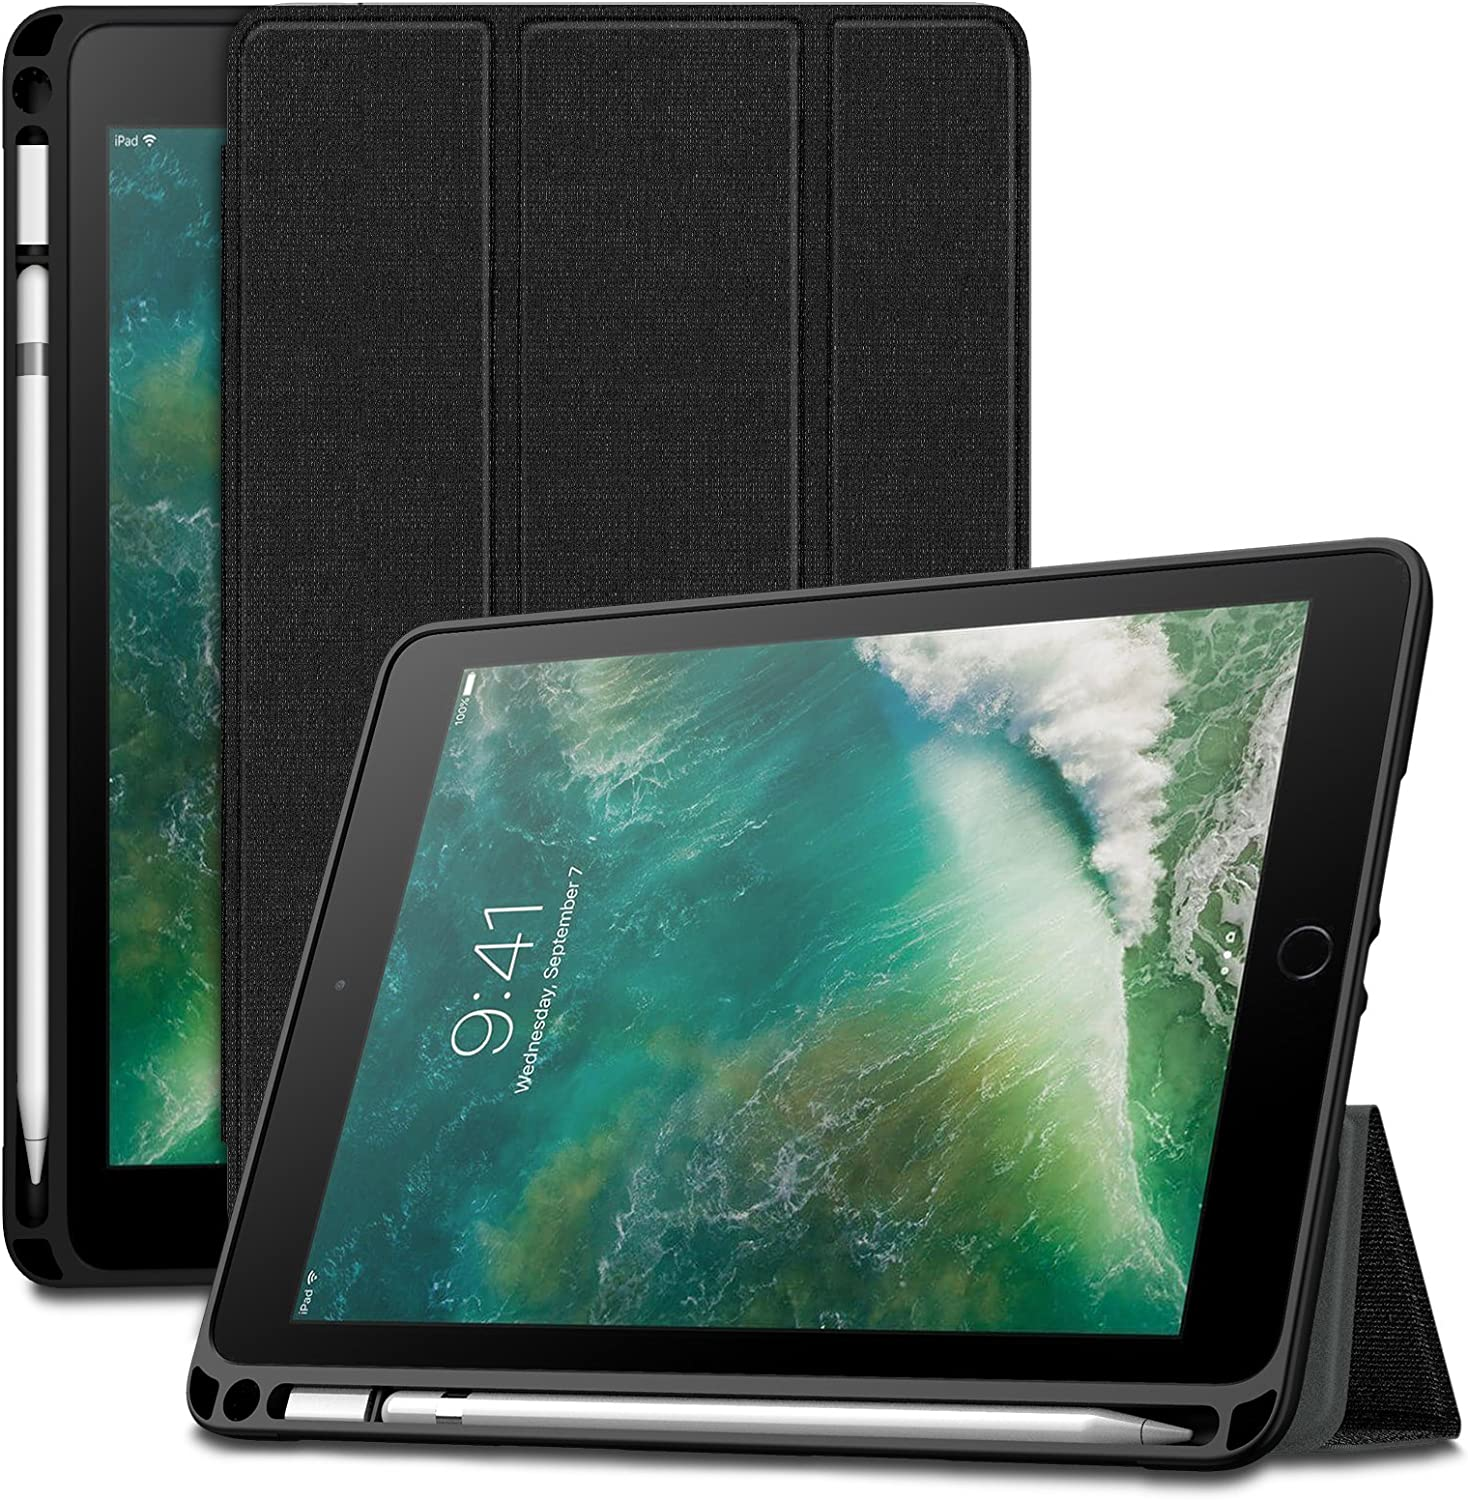 Amazon Com Infiland Ipad 9 7 2018 Case Tri Fold Smart Cover With Apple Pencil Holder Compatible With Apple Ipad 6th Gen 9 7 Inch 2018 Released Auto Wake Sleep Black Computers Accessories